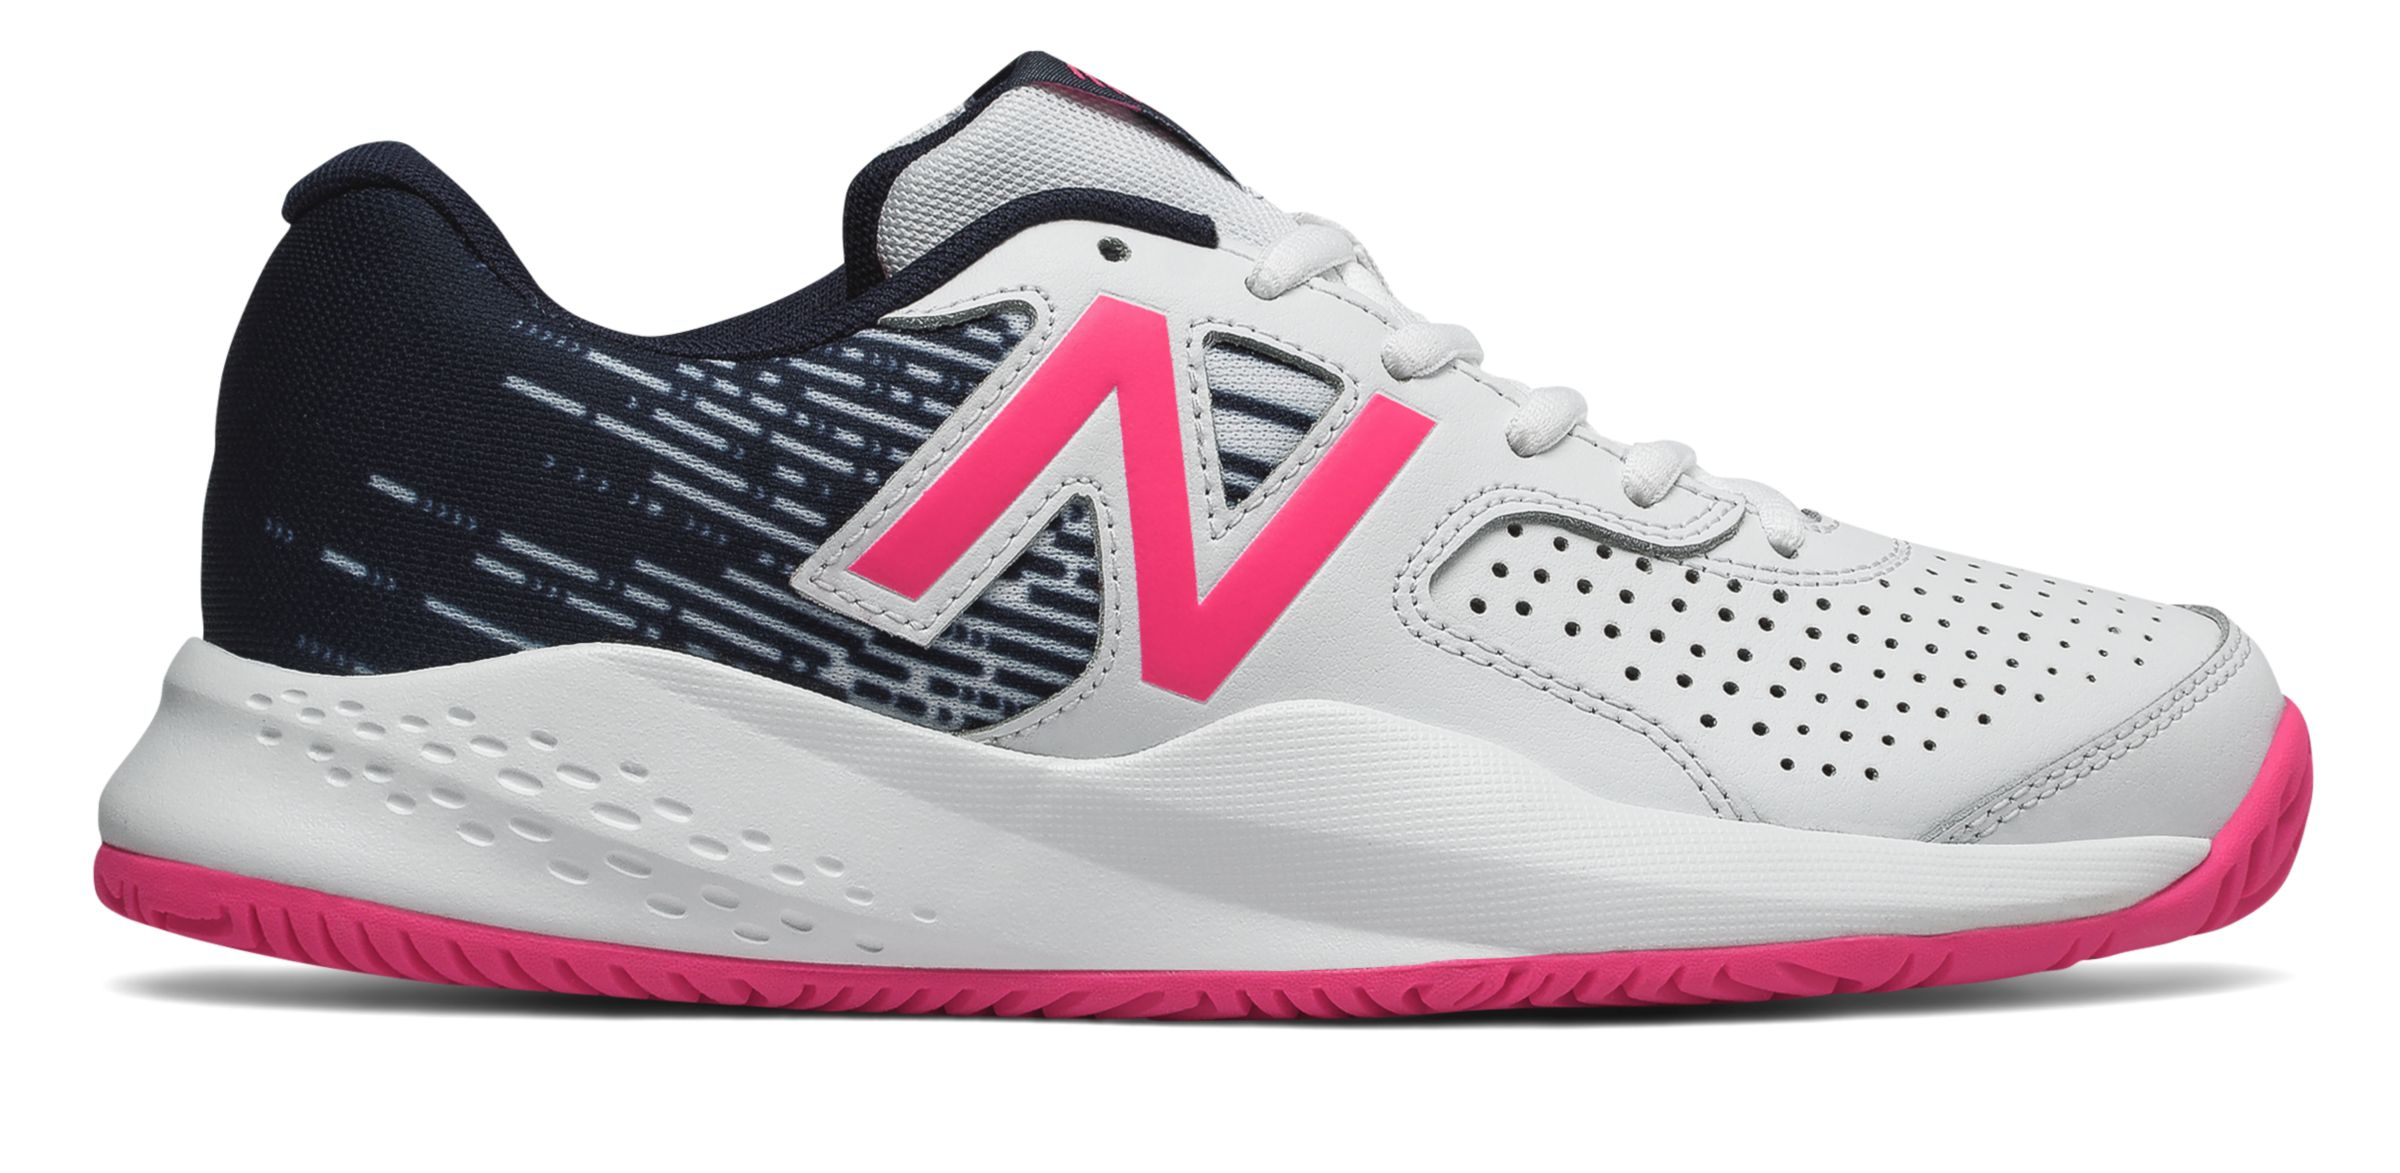 NB New Balance 696v3, White with Alpha Pink & Pigment